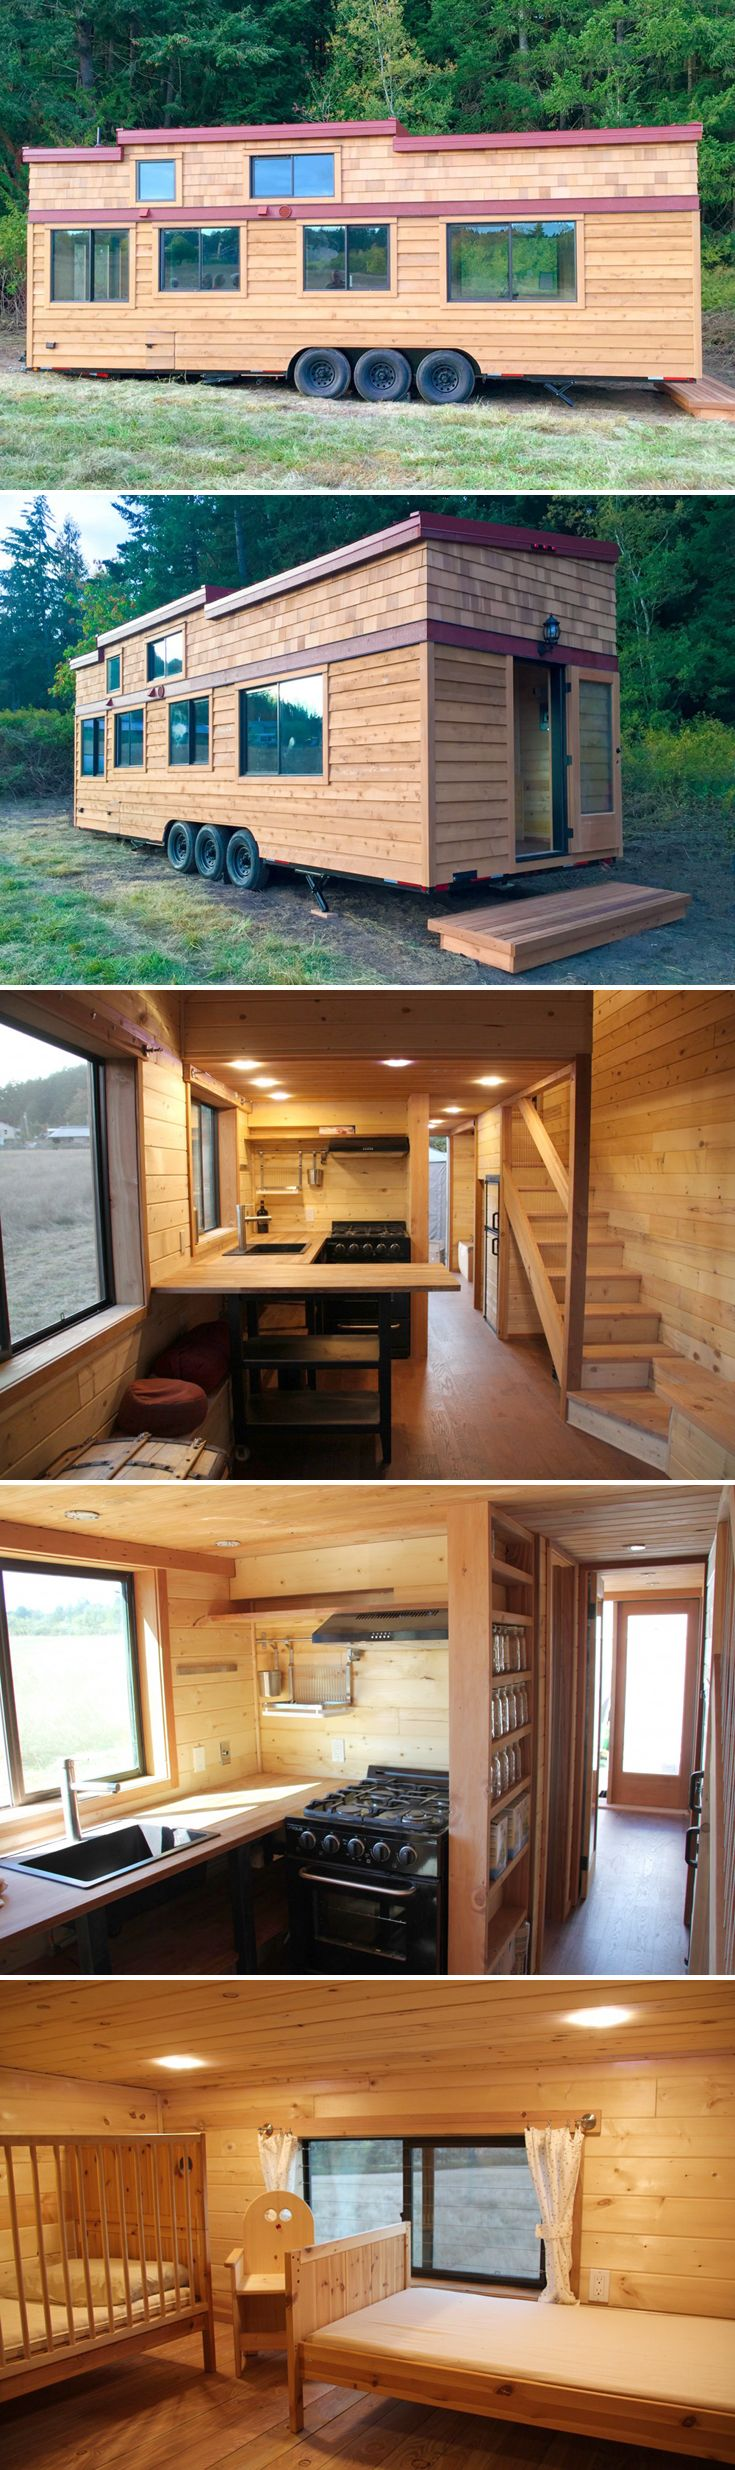 2681 Best Images About Tiny Houses On Pinterest Tiny